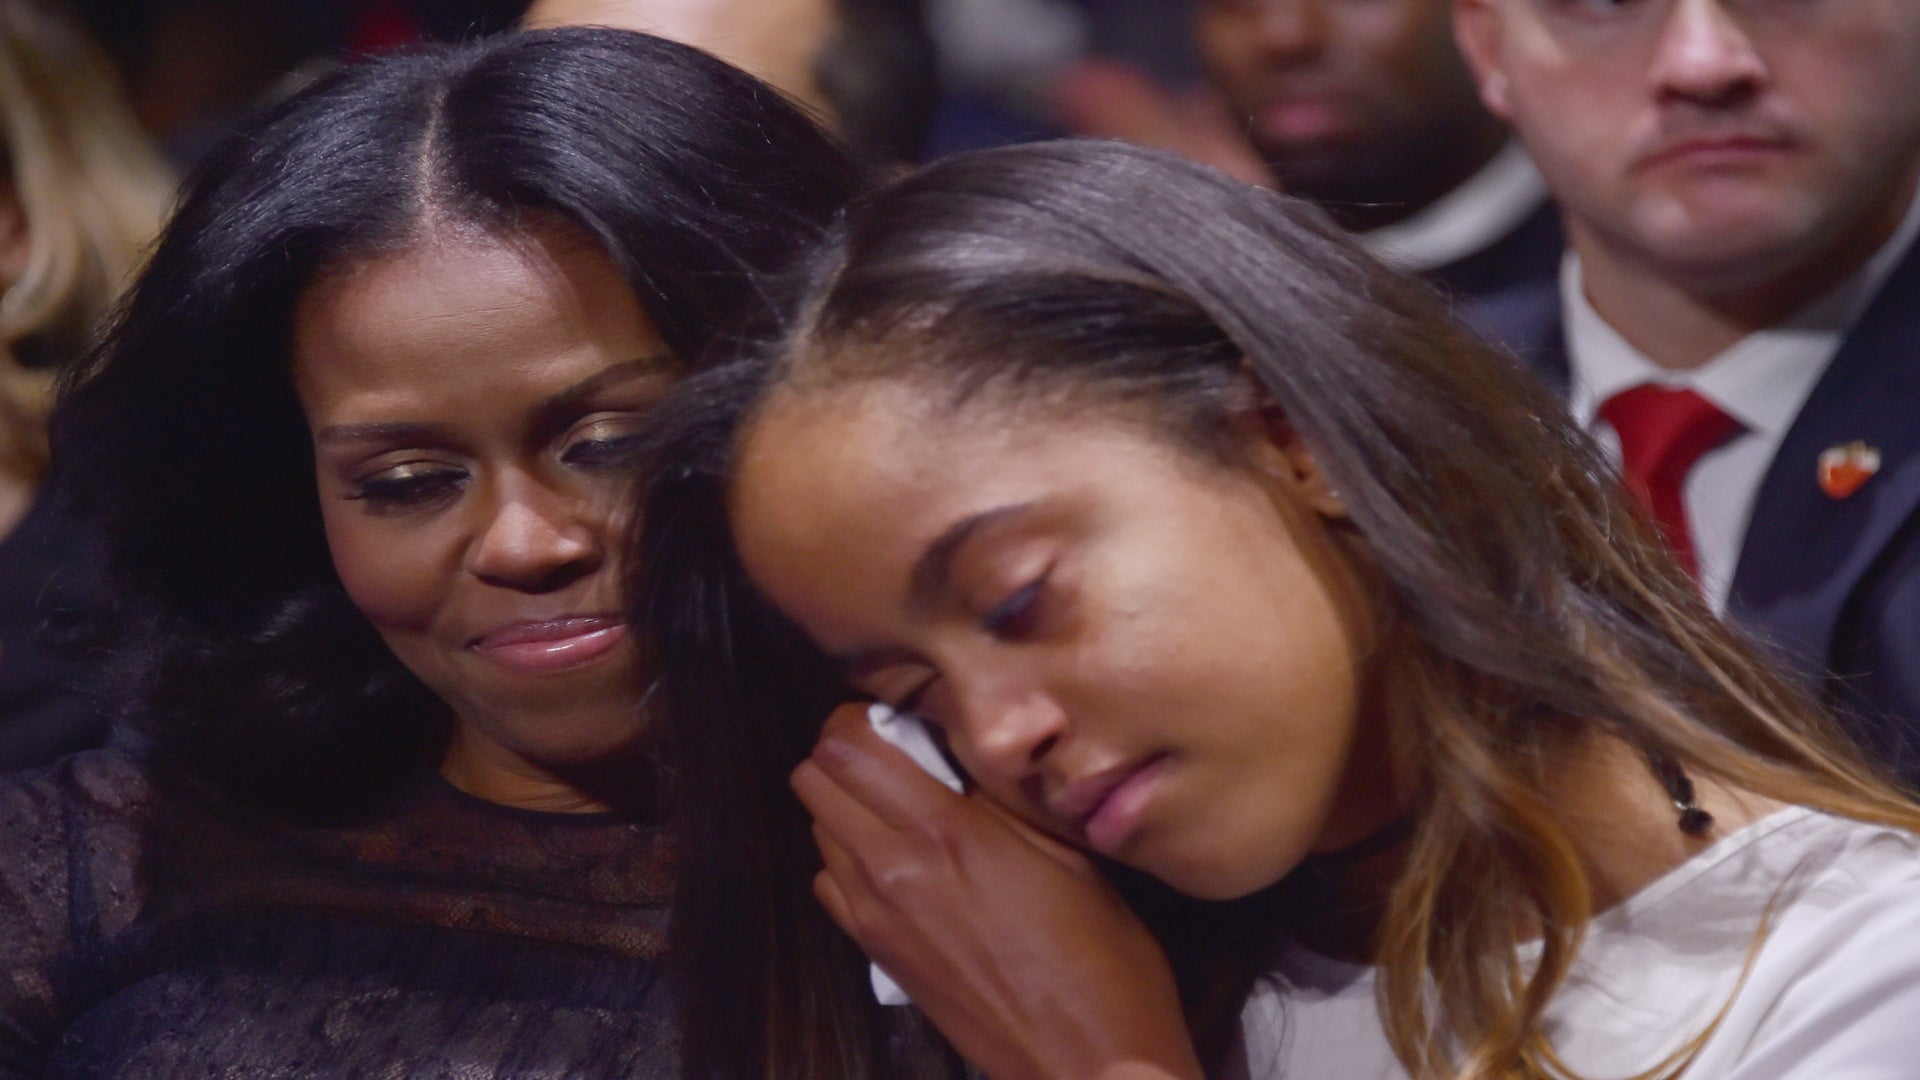 President Obama And Daughter Malia Moved To Tears As He Praised Wife Michelle During Moving Farewell Speech